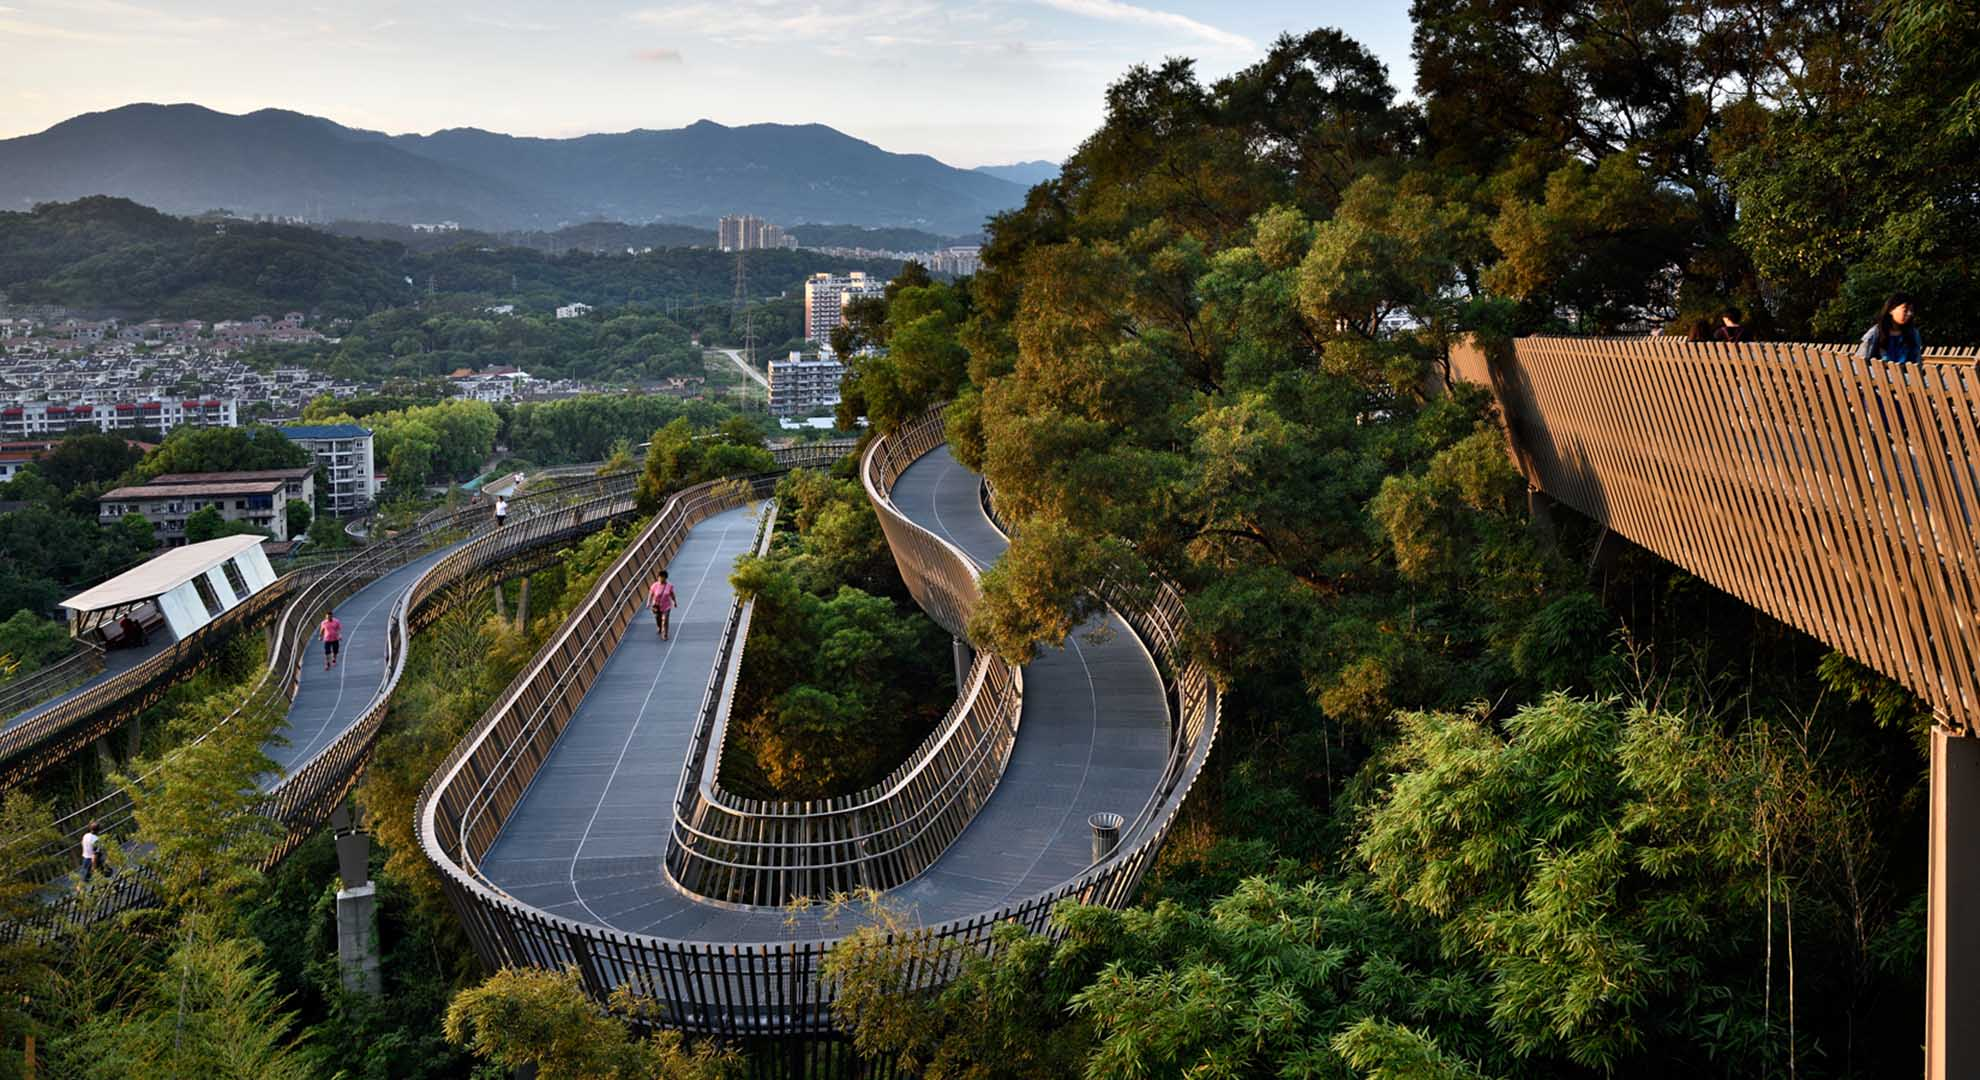 Trans-Urban Connector in Fuzhou, China, is a landscaping work that encourages healthy lifestyles